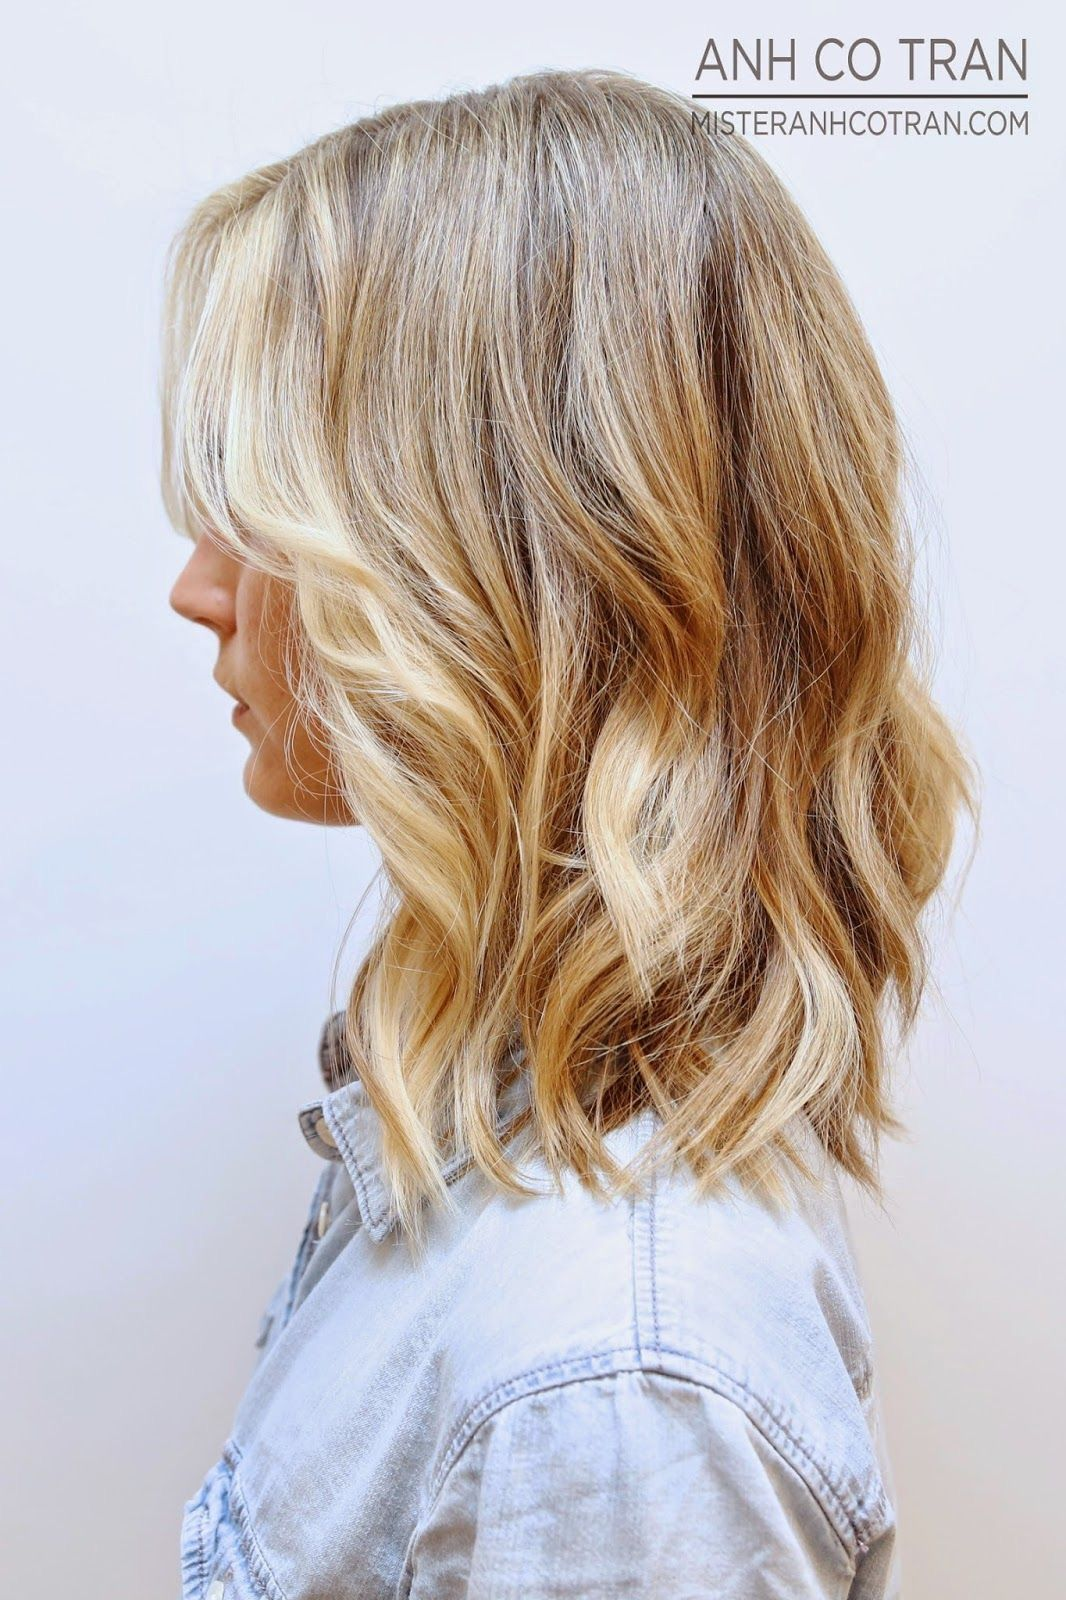 I love this hair, I think it's looks so nice. Especially with ombré.